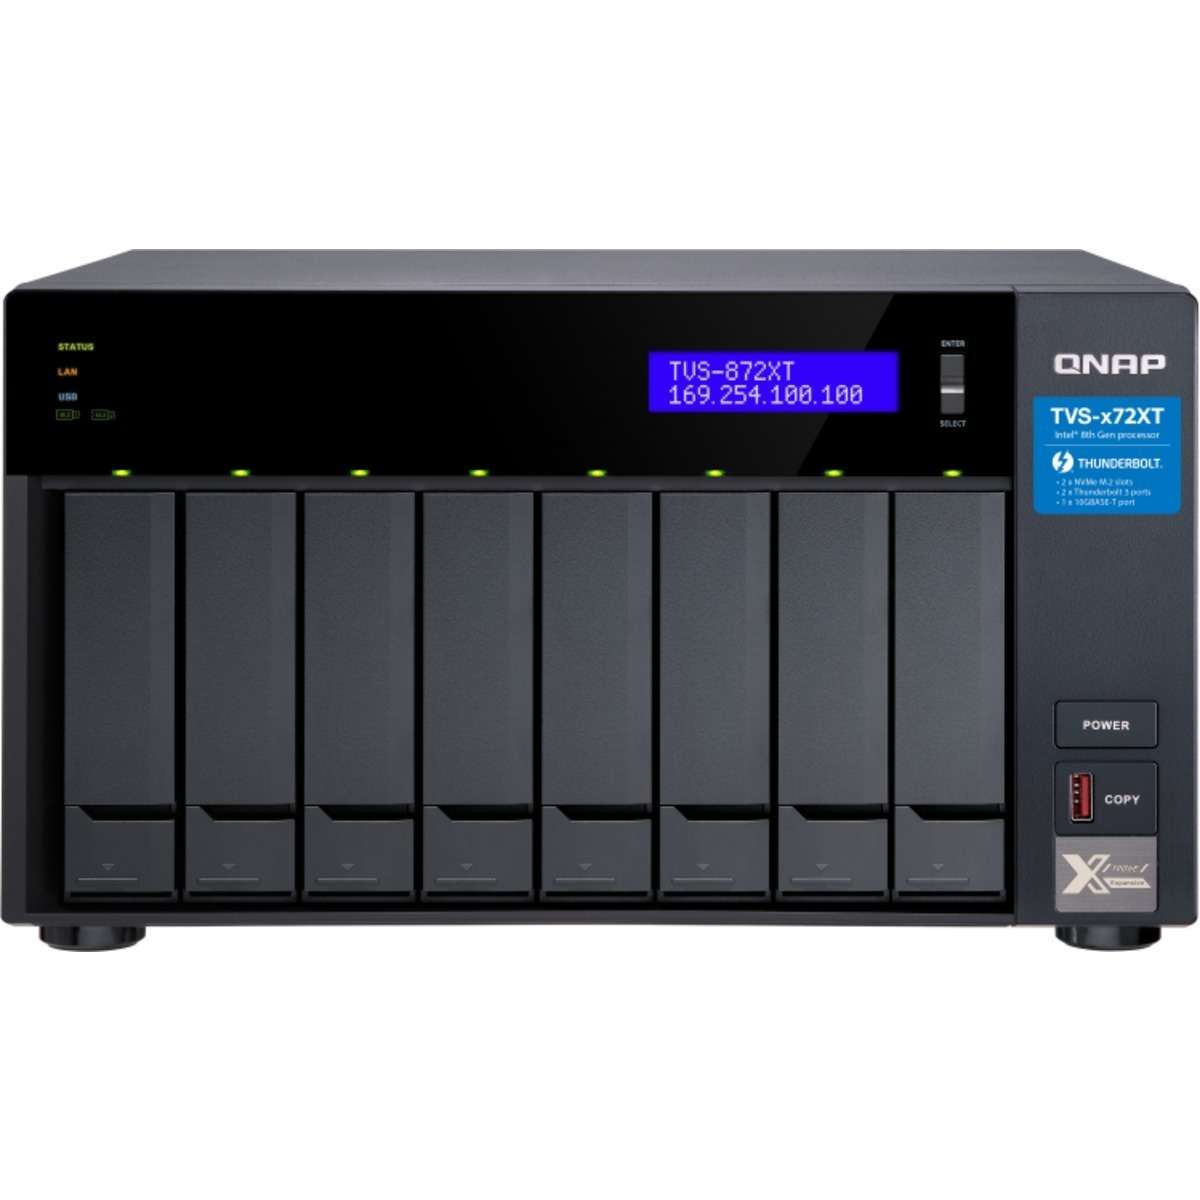 buy $3080 QNAP TVS-872XT Thunderbolt 3 8tb Desktop DAS-NAS - Combo Direct + Network Storage Device 8x1000gb Seagate BarraCuda ZA1000CM10003 2.5 SATA 6Gb/s SSD CONSUMER Class Drives Installed - Burn-In Tested - nas headquarters buy network attached storage server device das new raid-5 free shipping usa holiday new year clearance sale TVS-872XT Thunderbolt 3